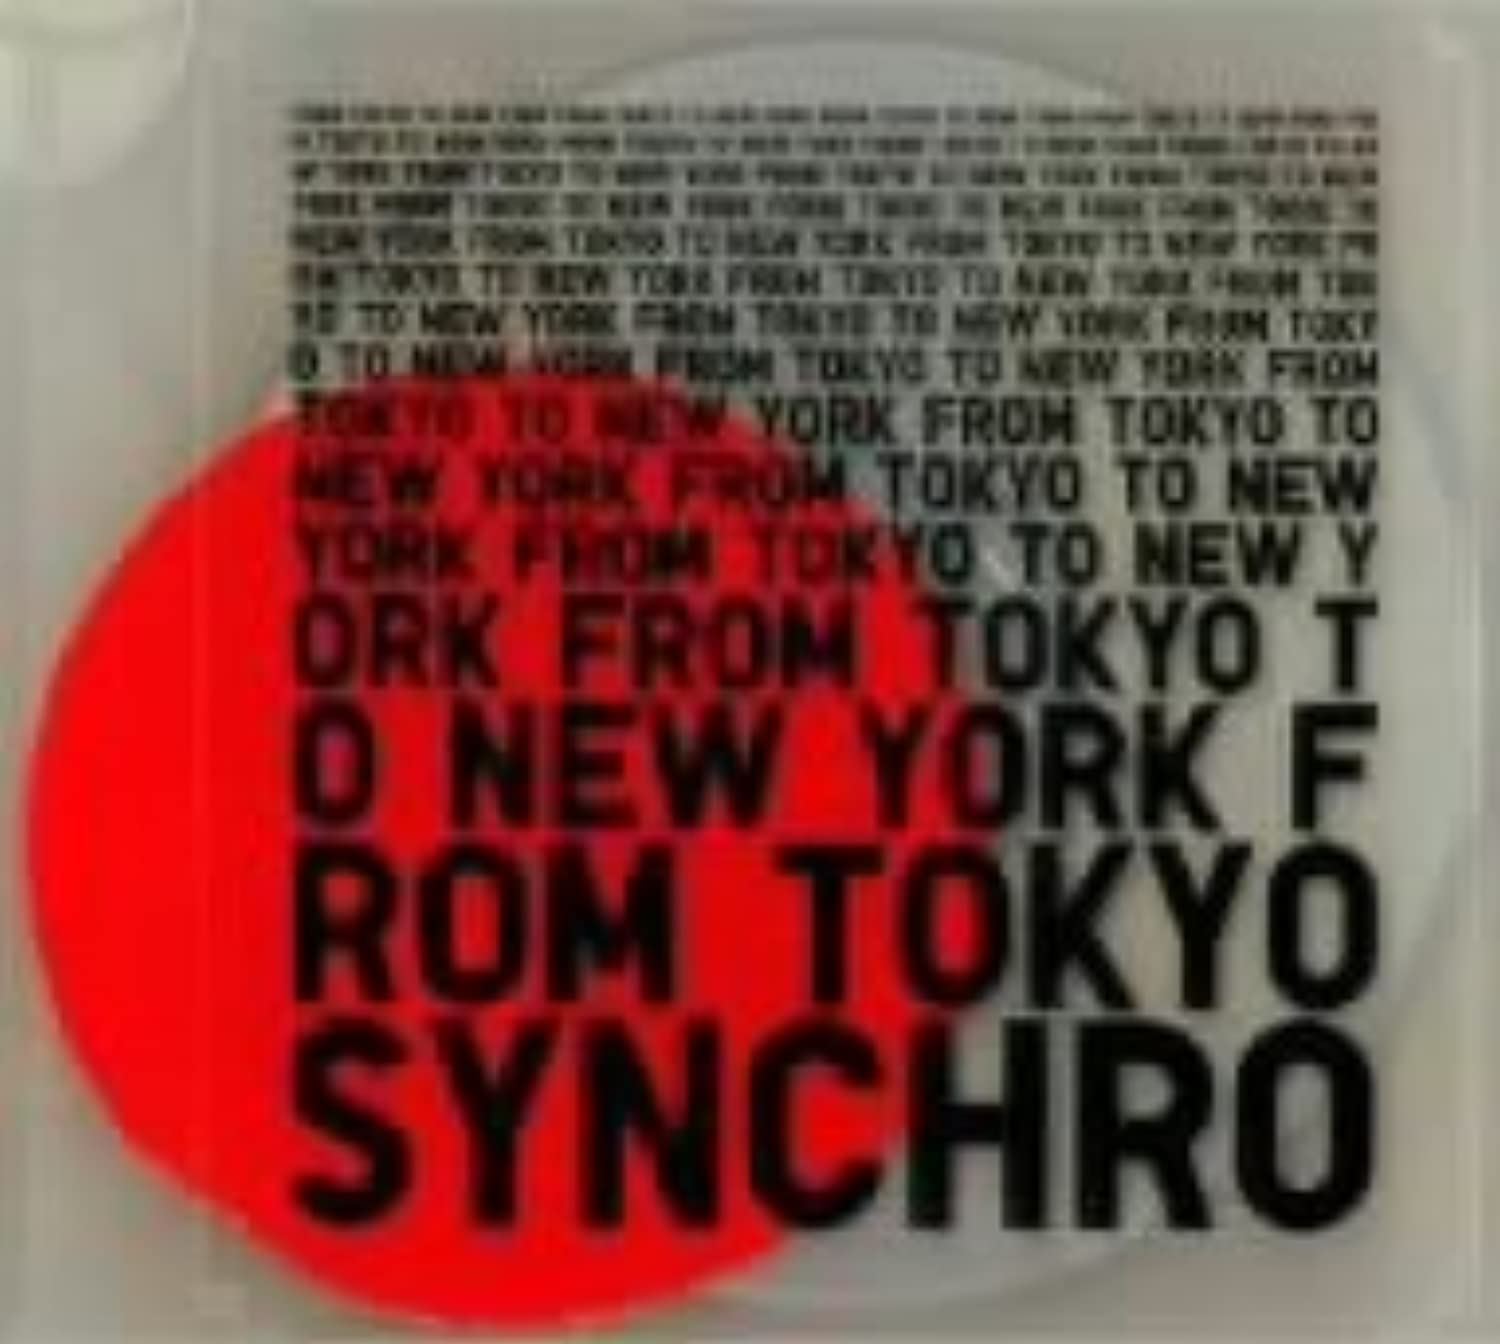 SYNCHRO/FROM TOKYO TO NEW YORK compiled by FPM